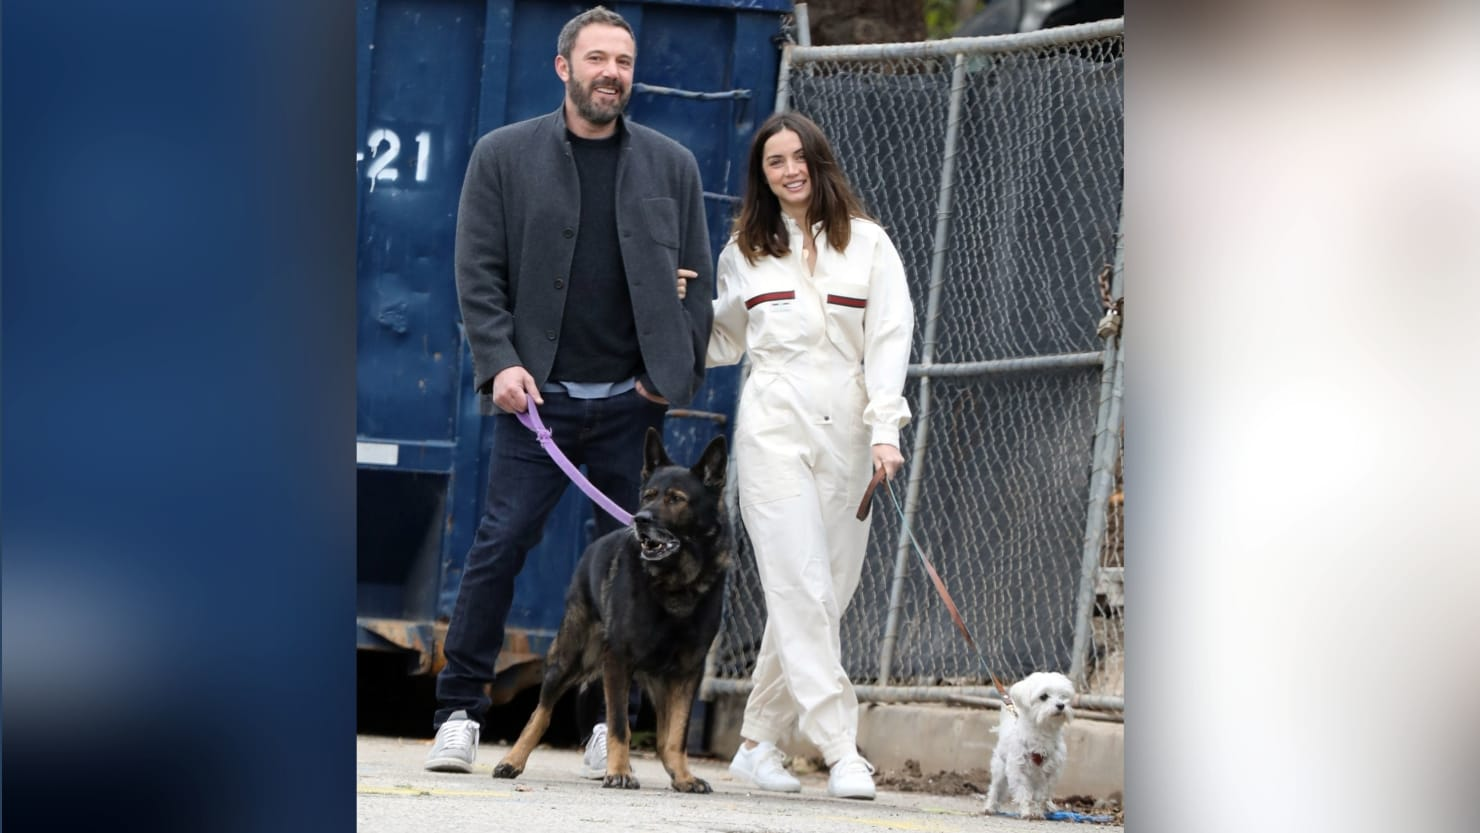 Our Year in Ben Affleck and Ana de Armas Updates: A Retrospective